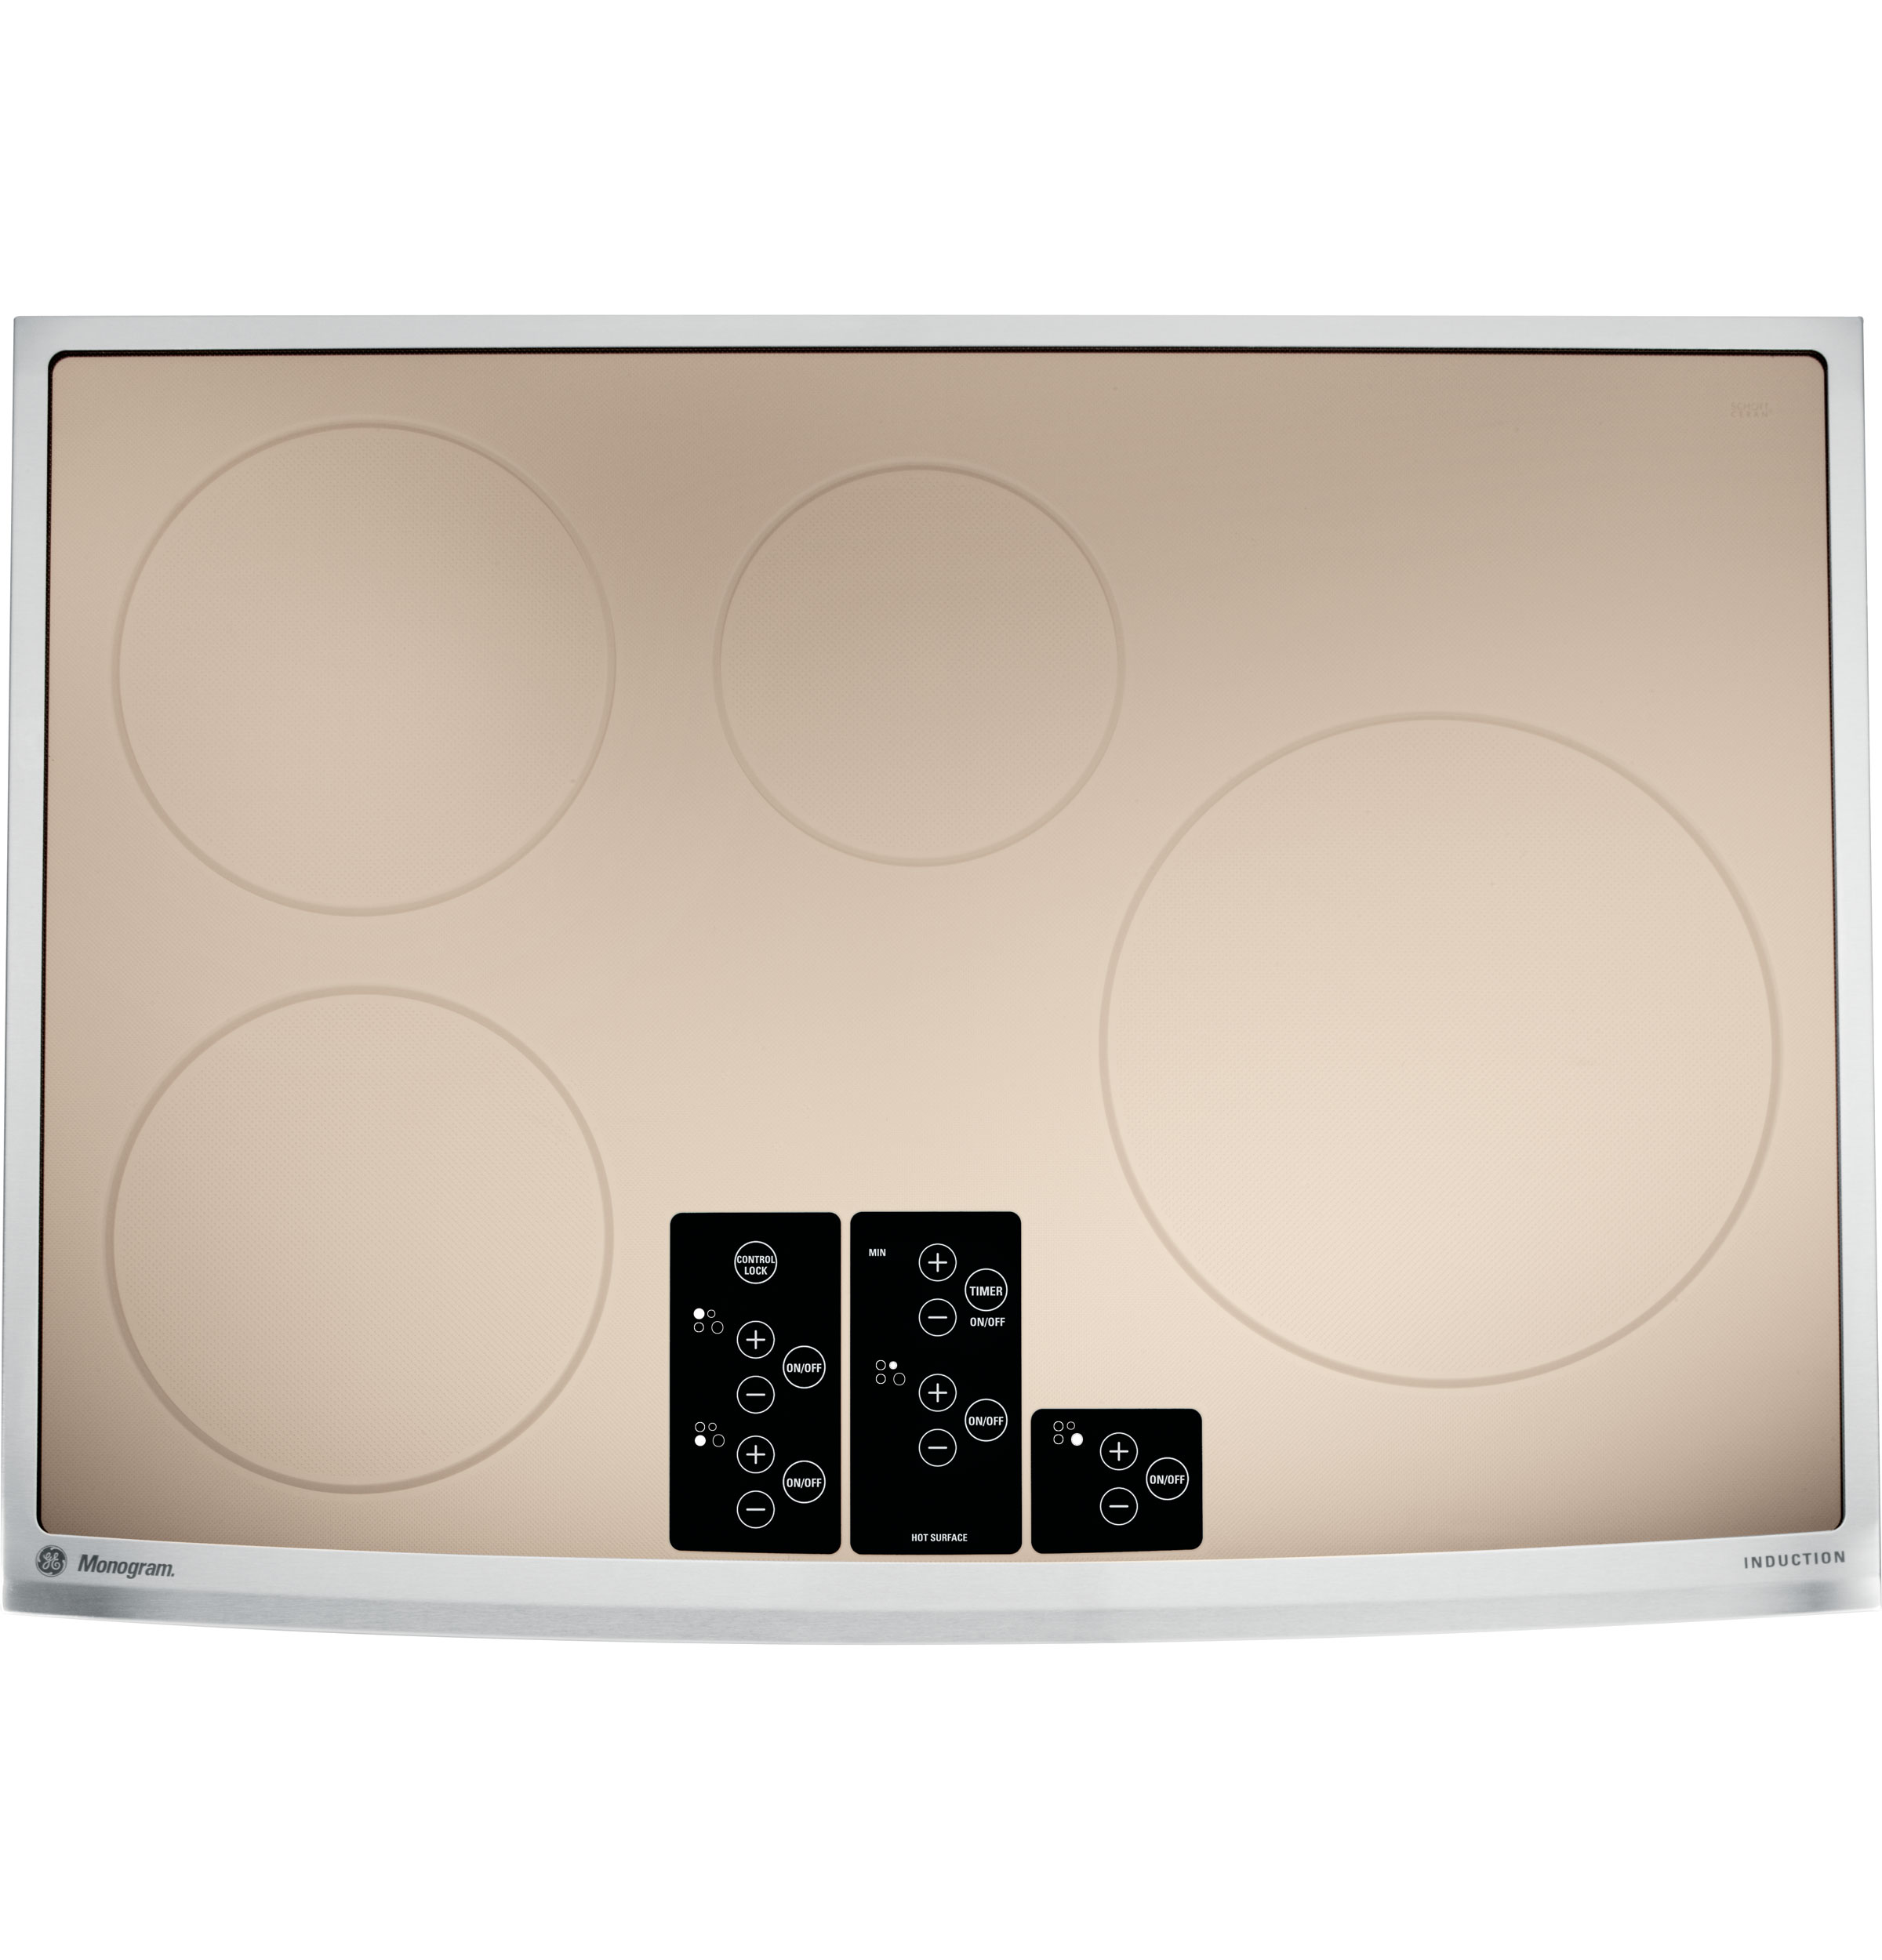 "Monogram GE Monogram® 30"" Induction Cooktop"